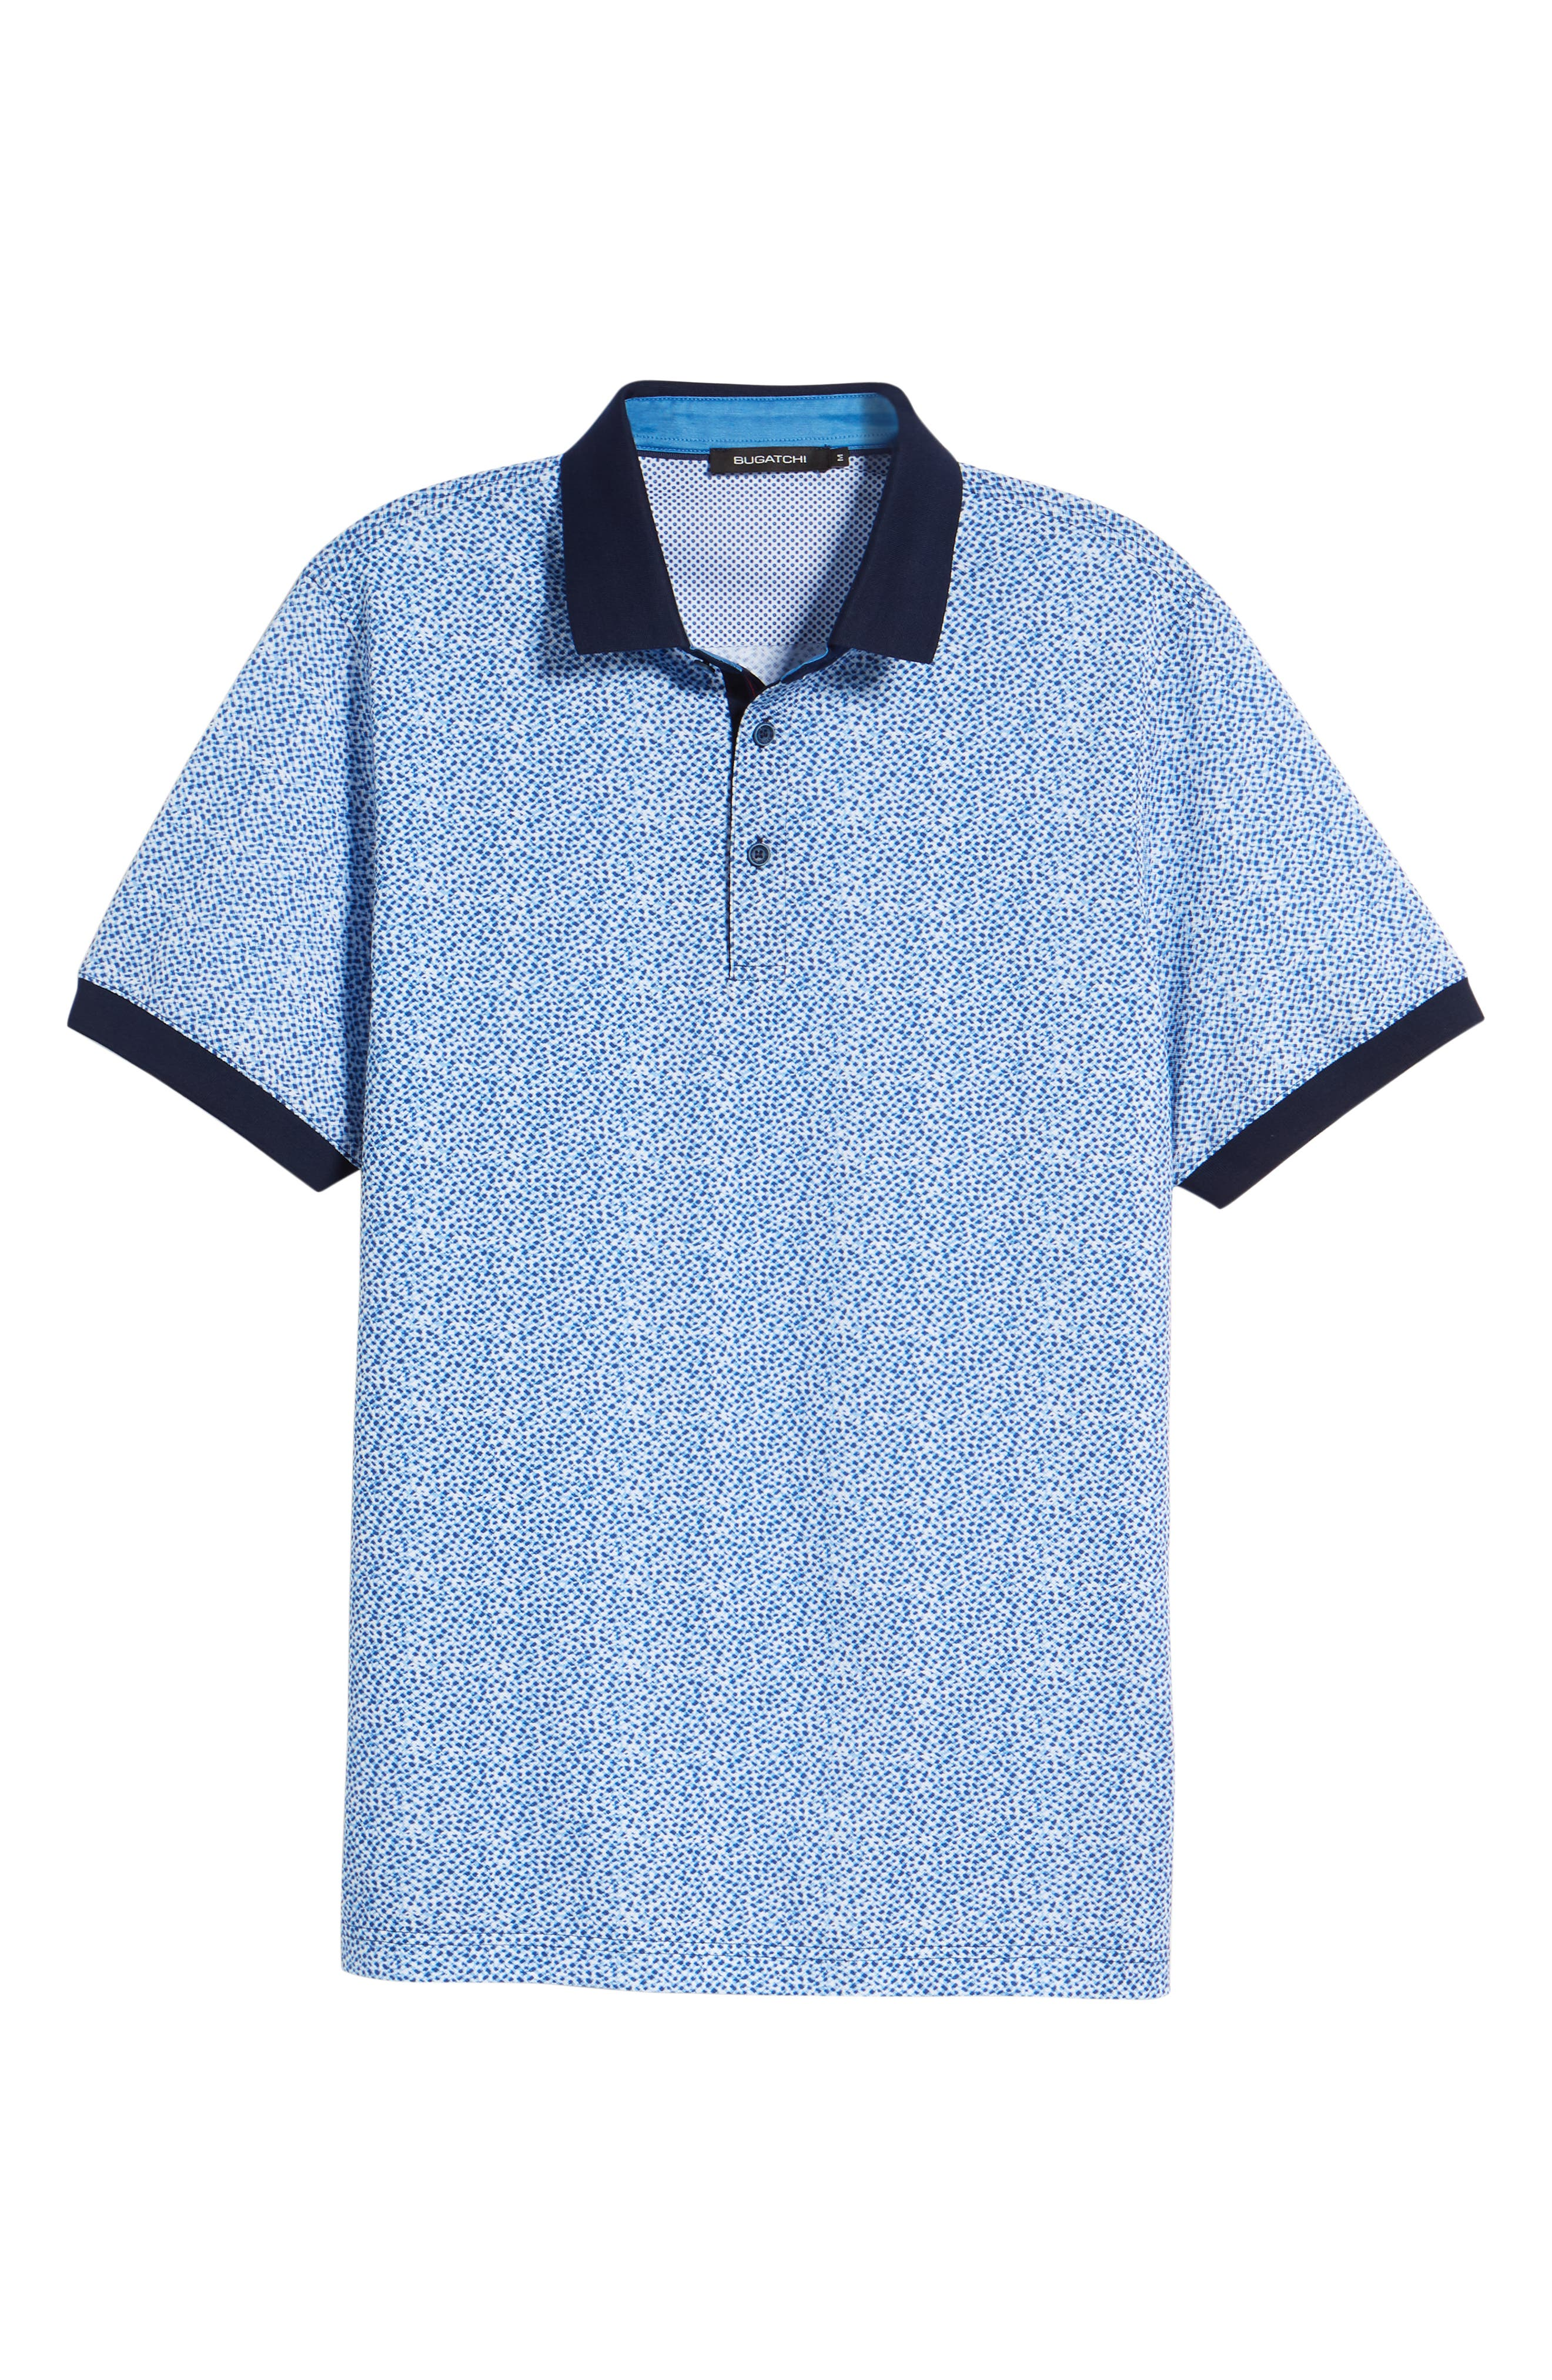 Stipple Print Piqué Polo,                             Alternate thumbnail 6, color,                             411